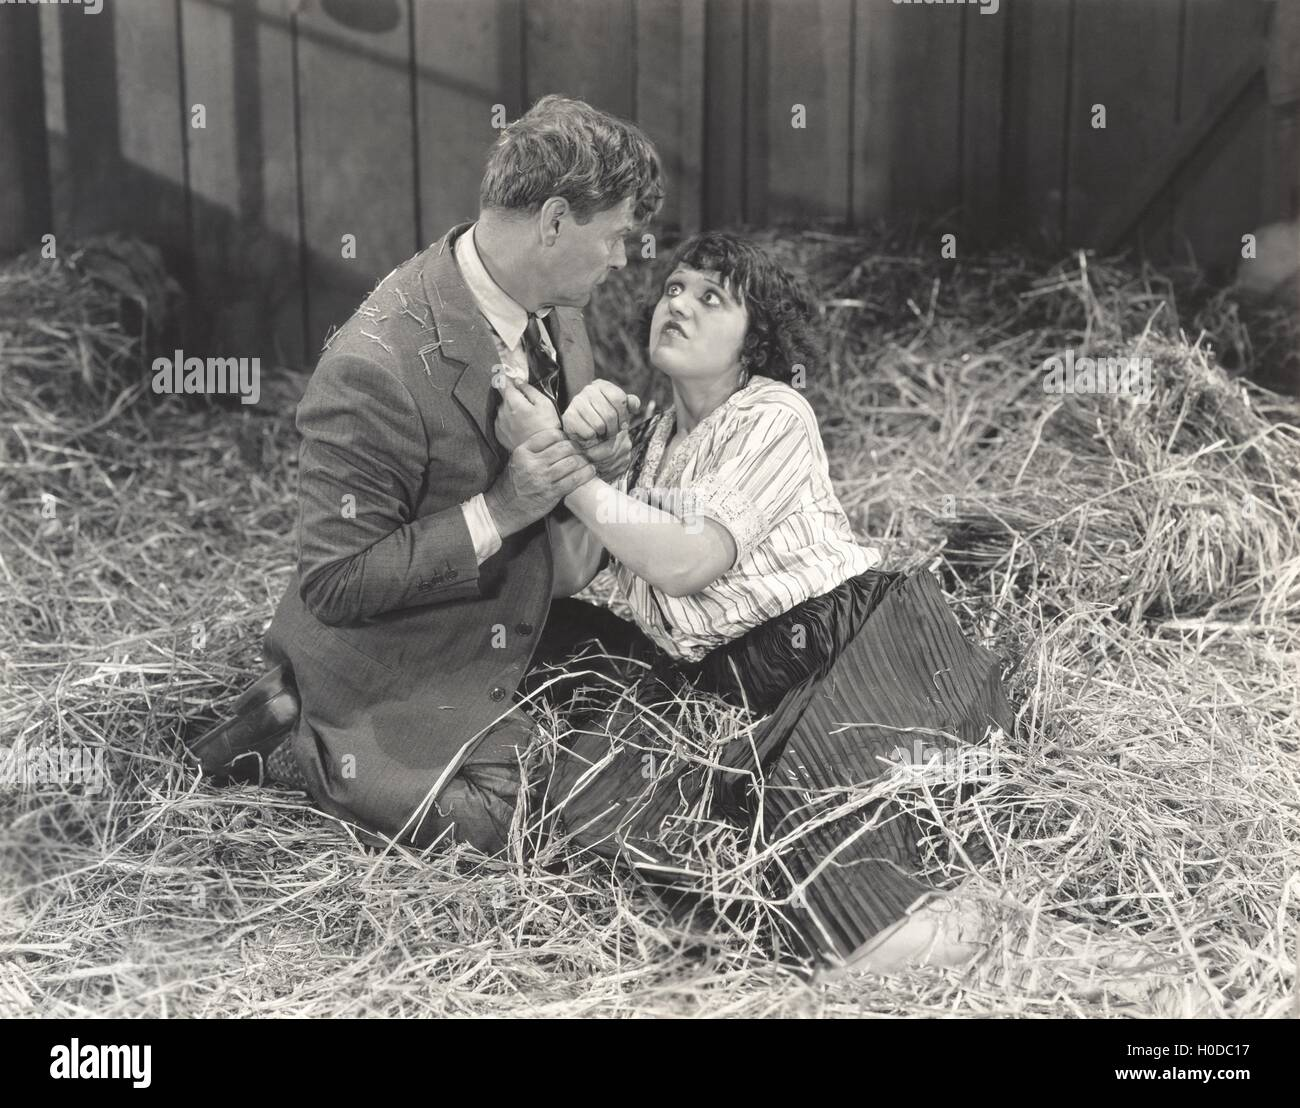 Couple fighting in barn - Stock Image